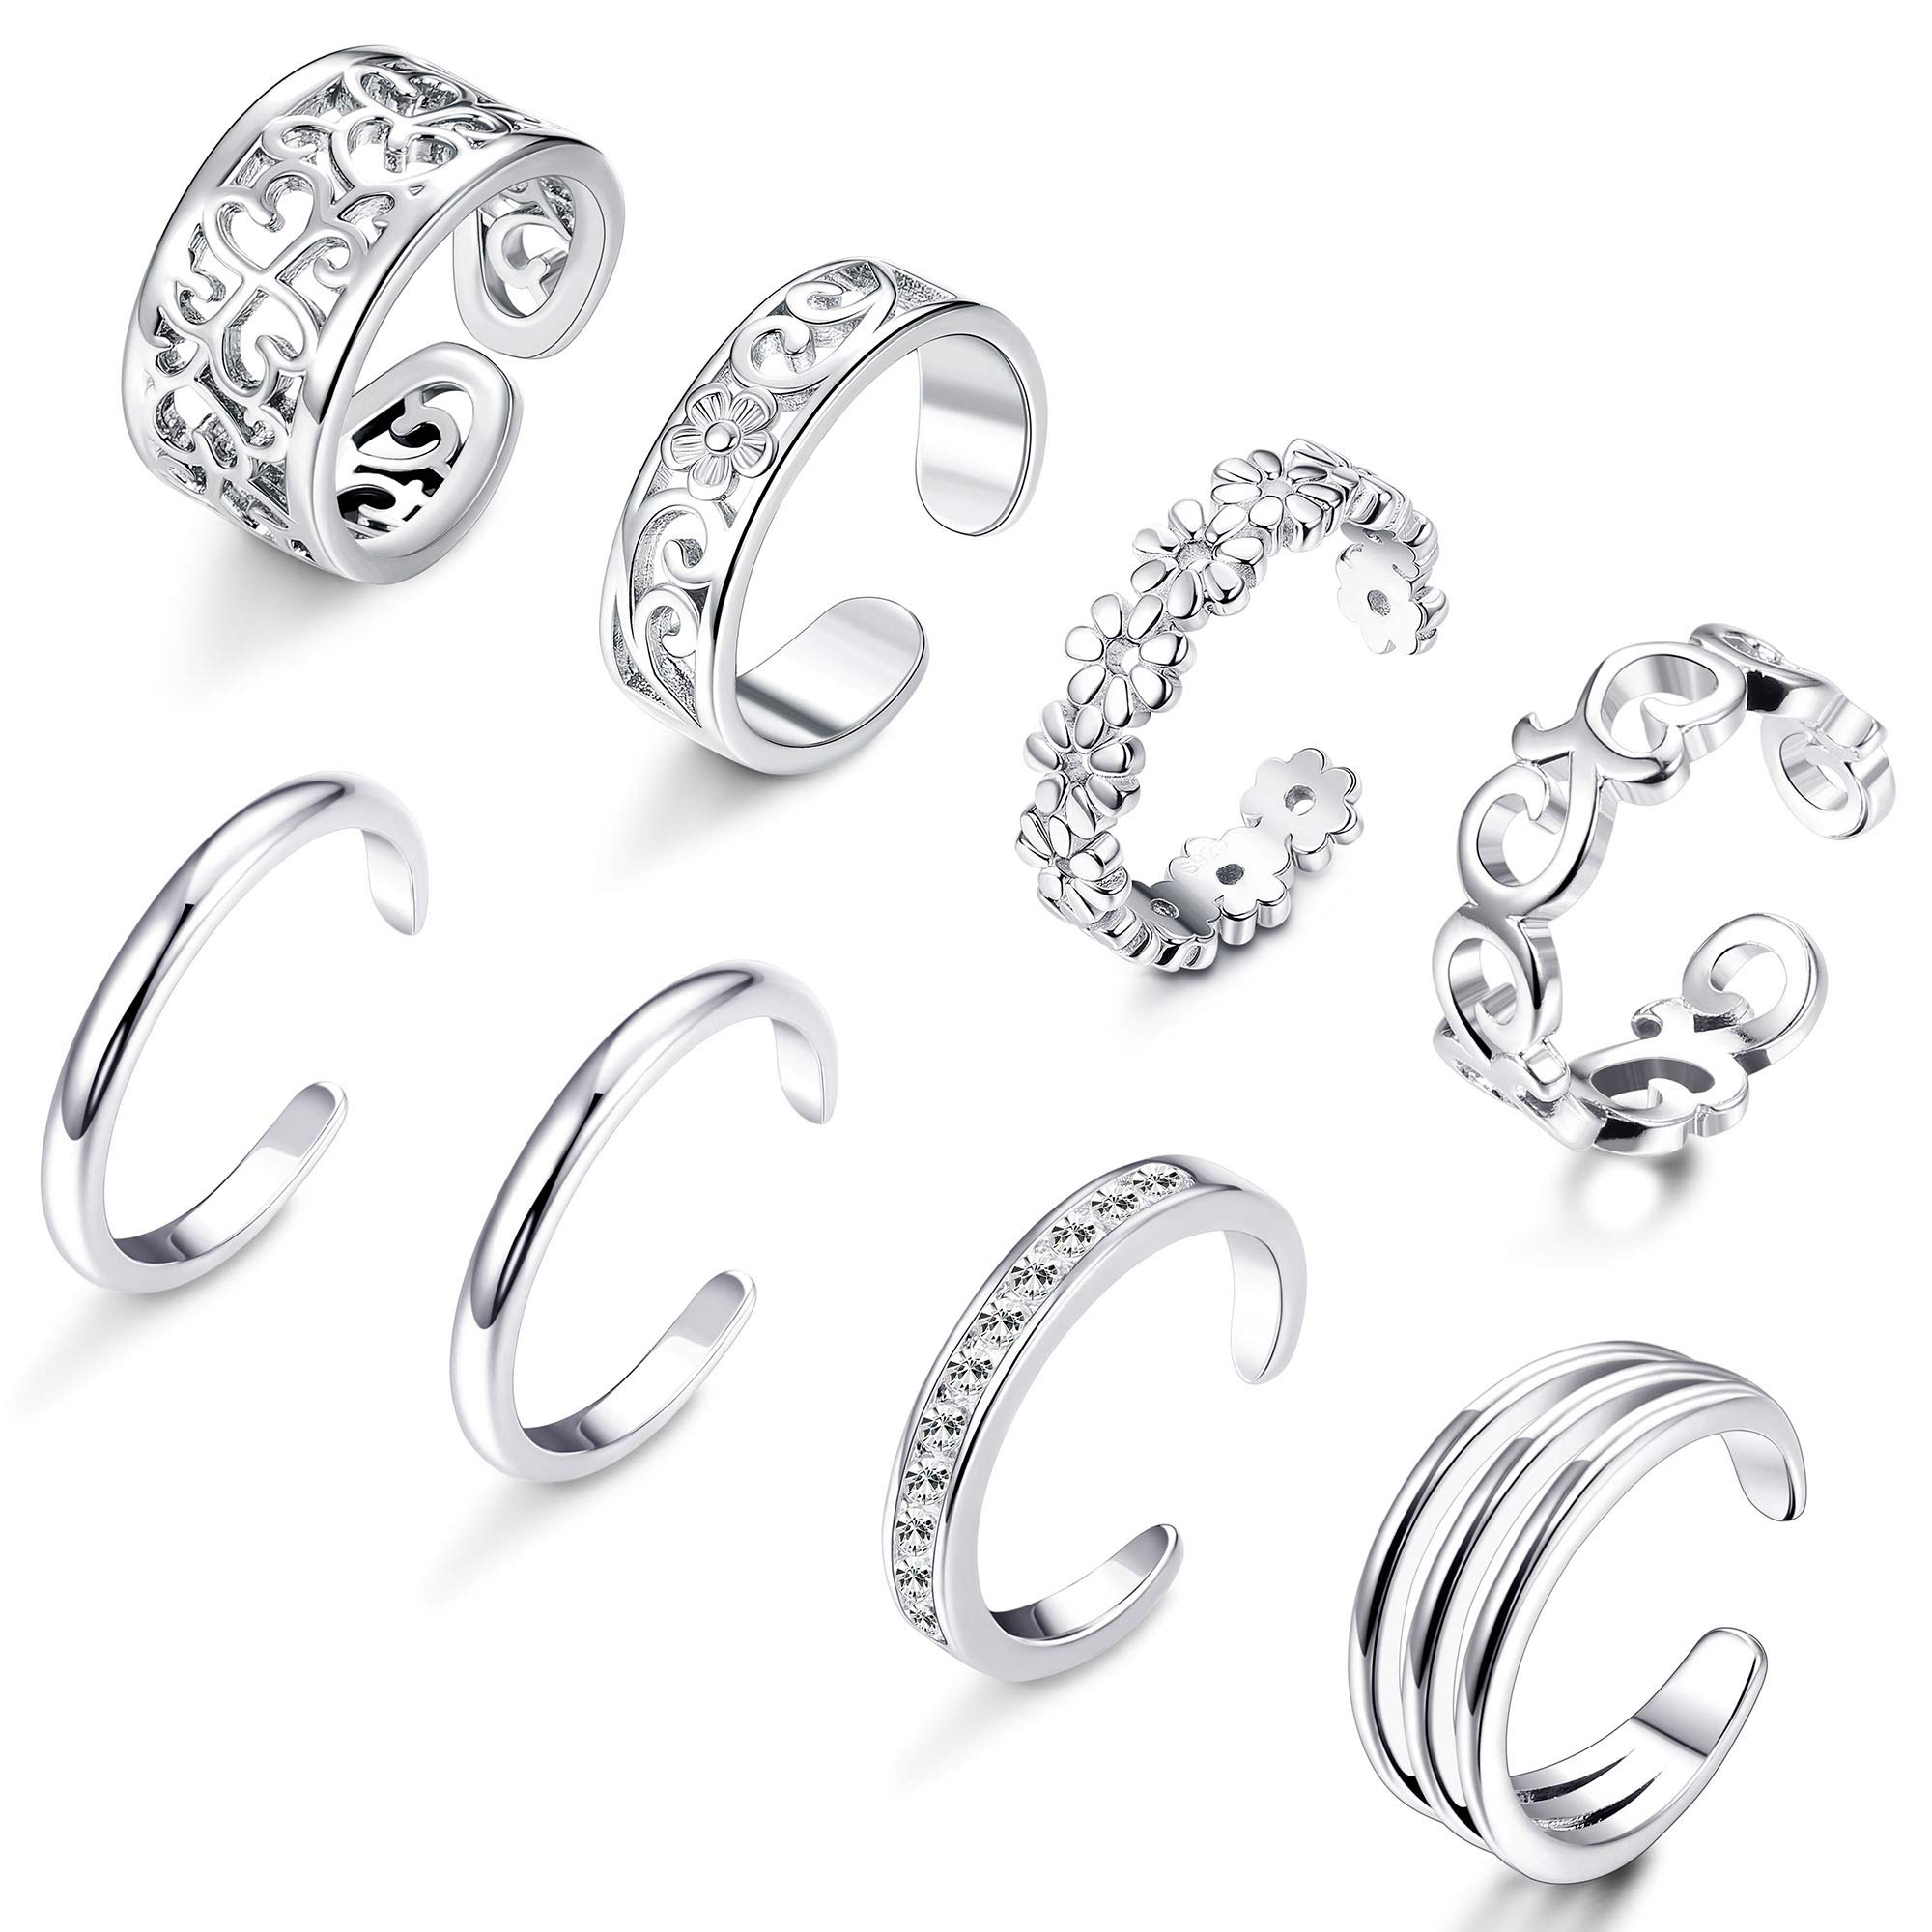 FIBO STEEL 8 Pcs Open Toe Rings for Women Girls Flower Hollow CZ Band Vintage Toe Ring Set Adjustable Silver-Tone by FIBO STEEL